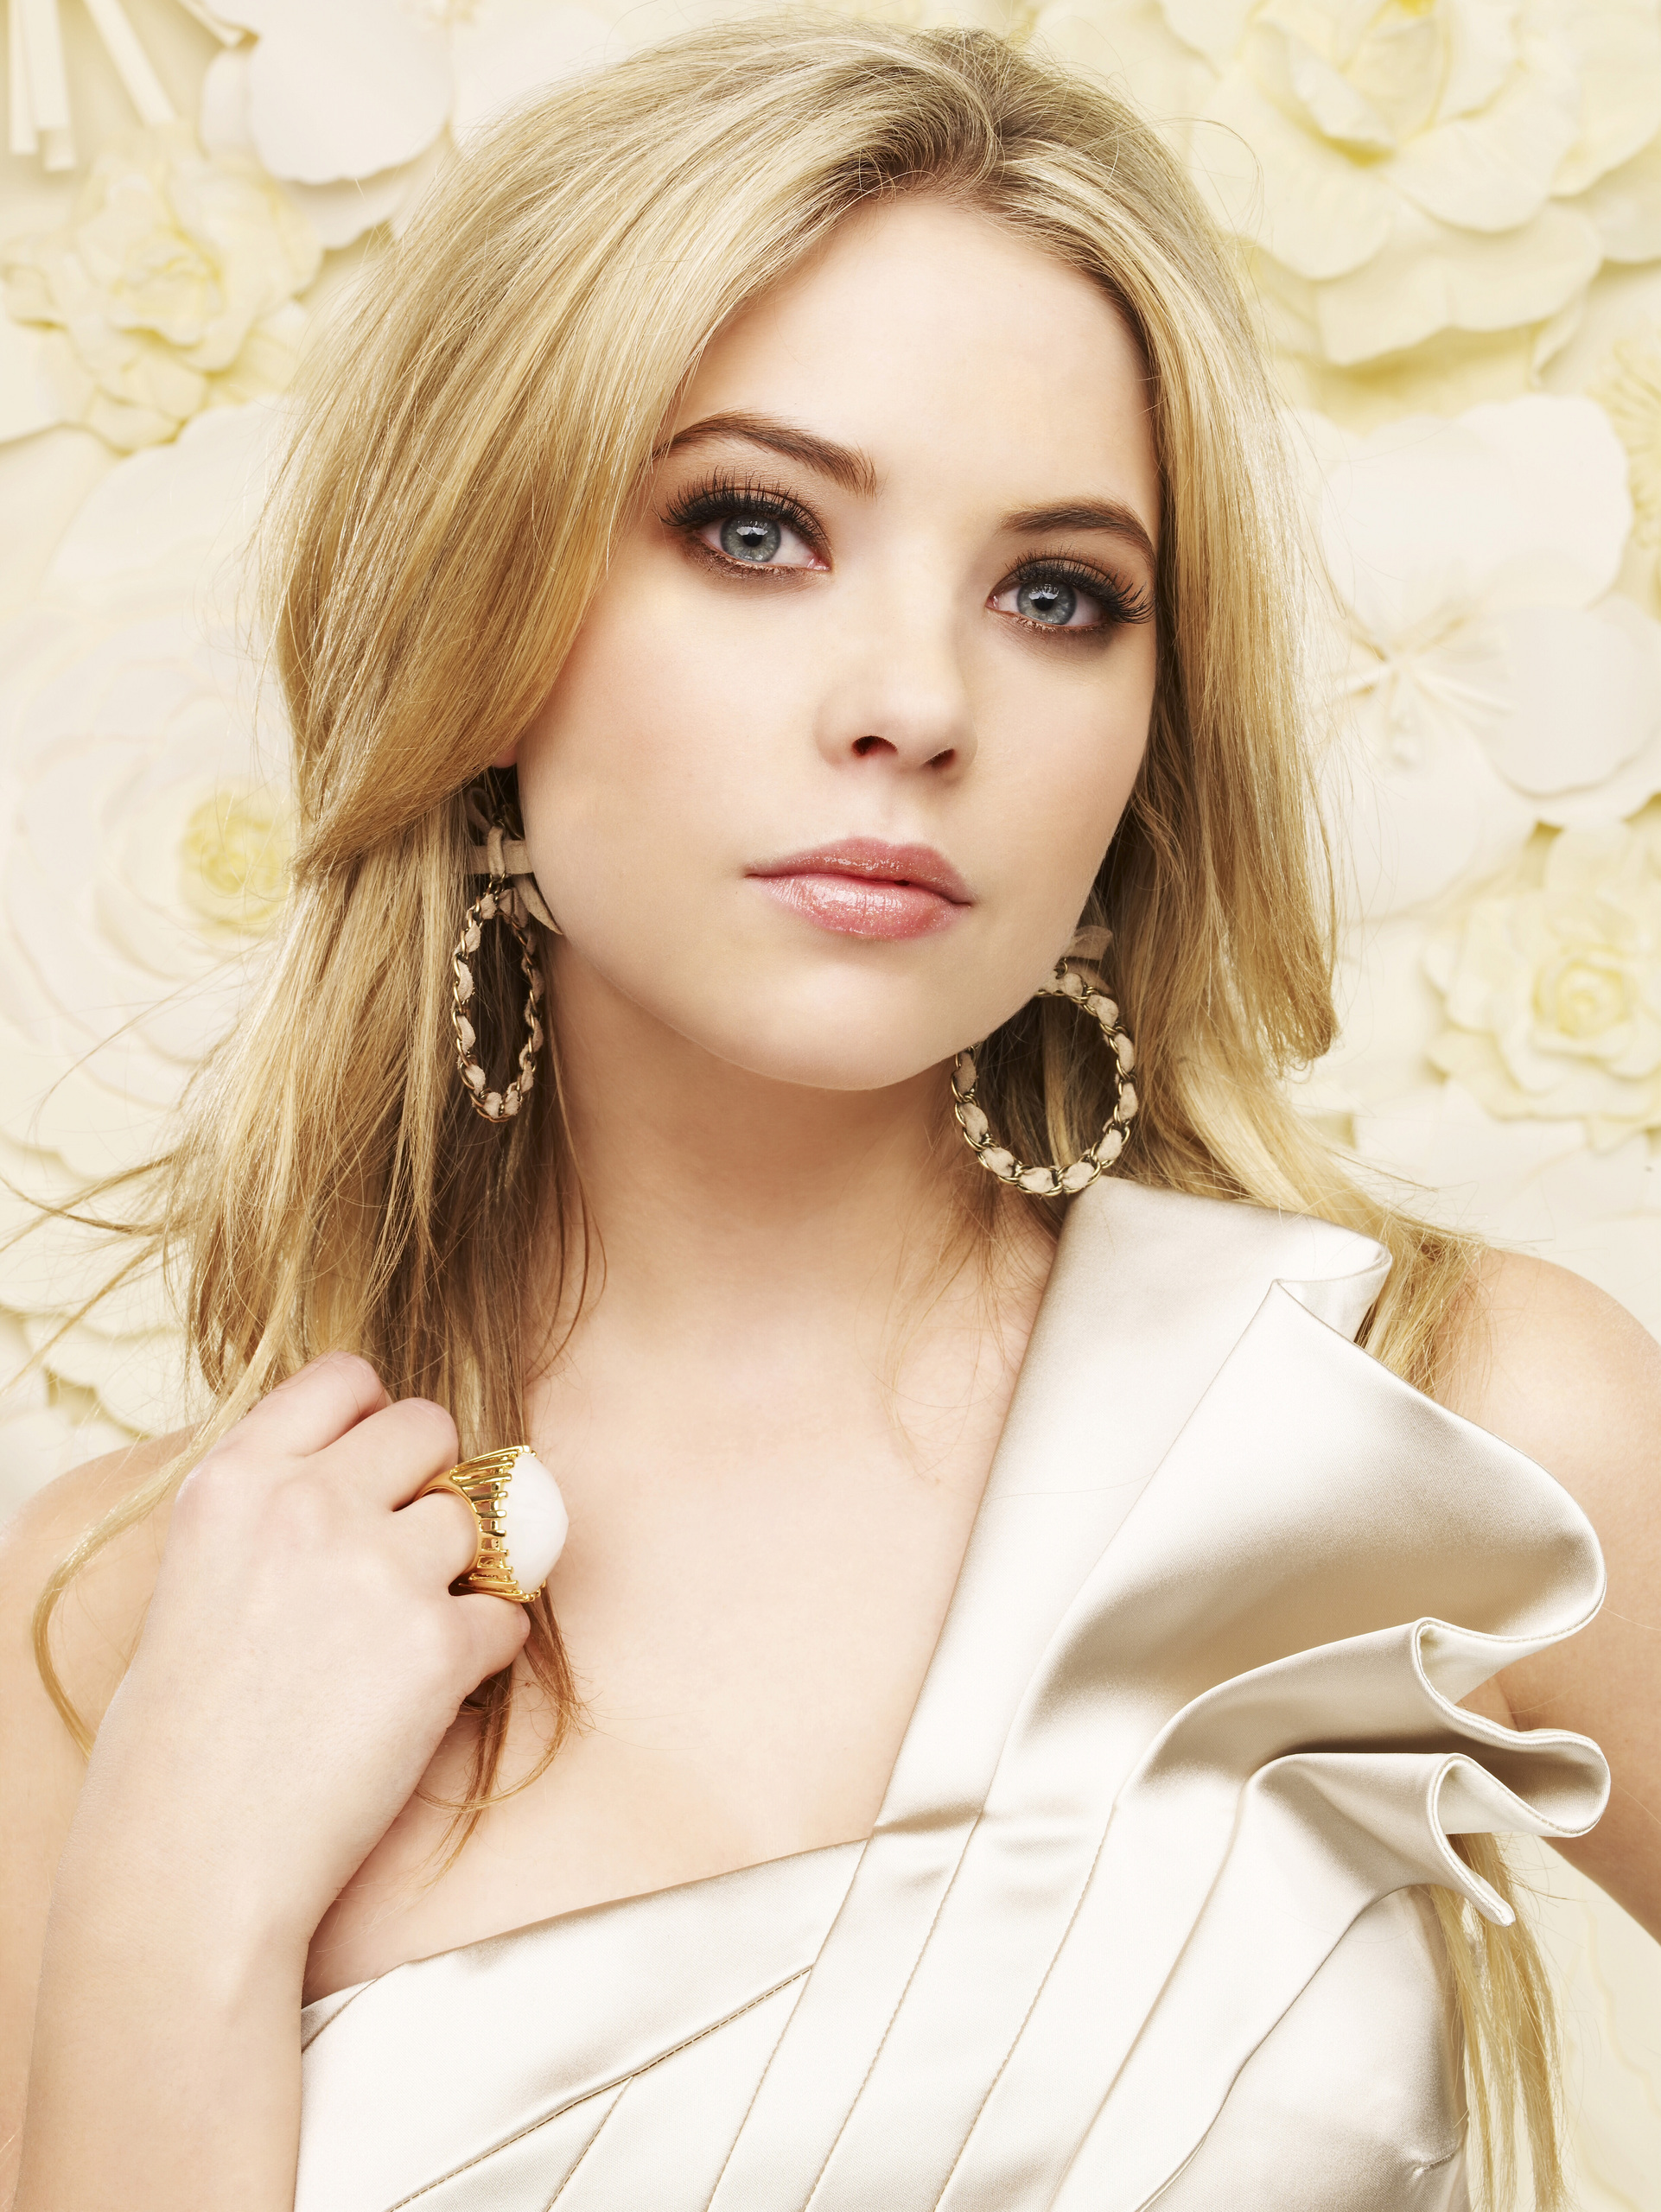 Hanna Marin Hbic Characters Photo 22411532 Fanpop